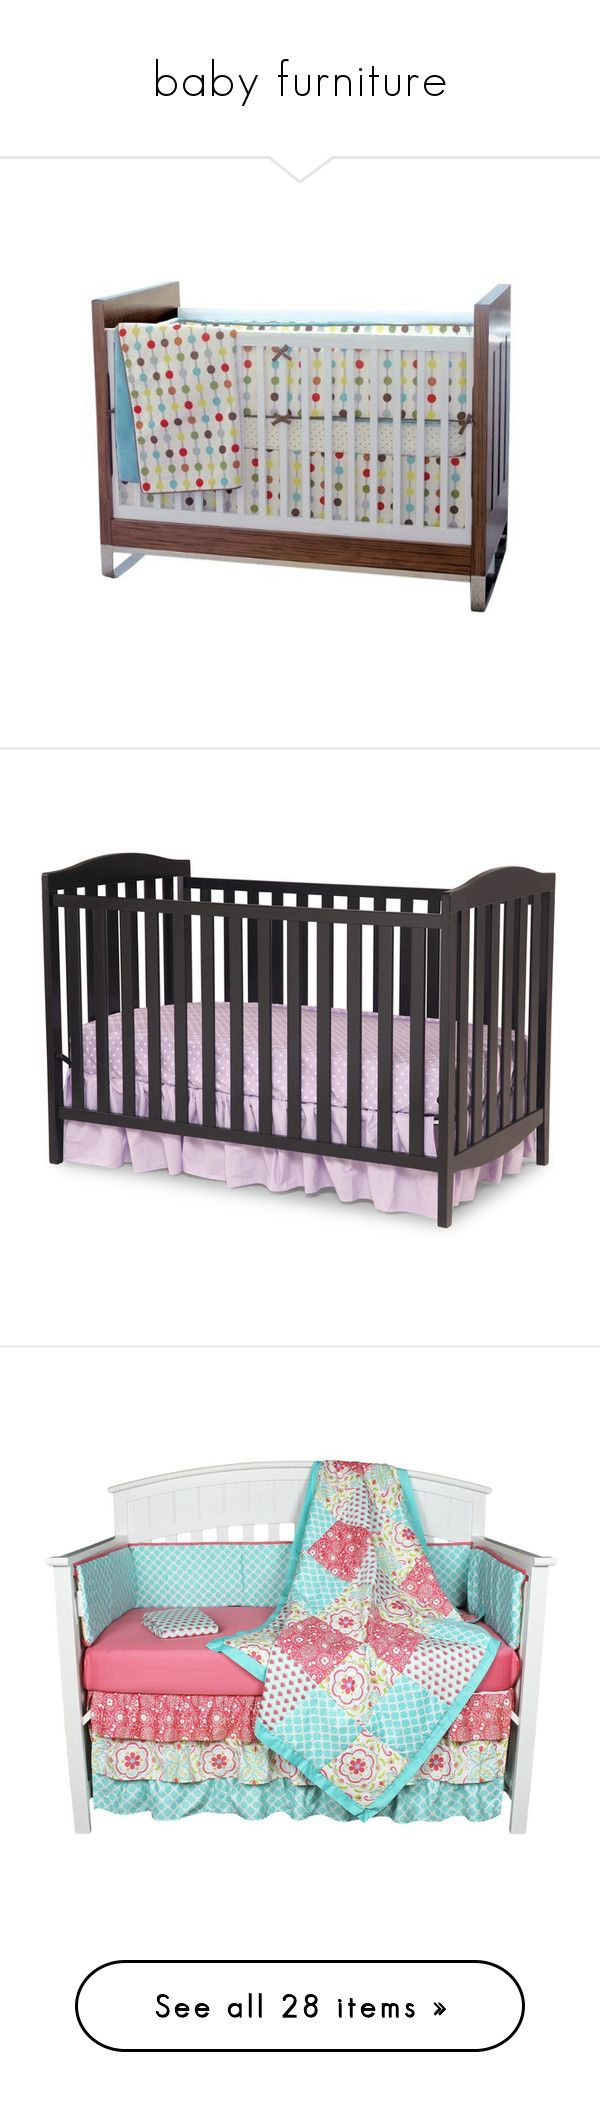 """""""baby furniture"""" by pokeasaurousrex ❤ liked on Polyvore featuring home, children's room, children's bedding, baby bedding, children's furniture, nursery furniture, baby, black, children's decor and baby stuff"""